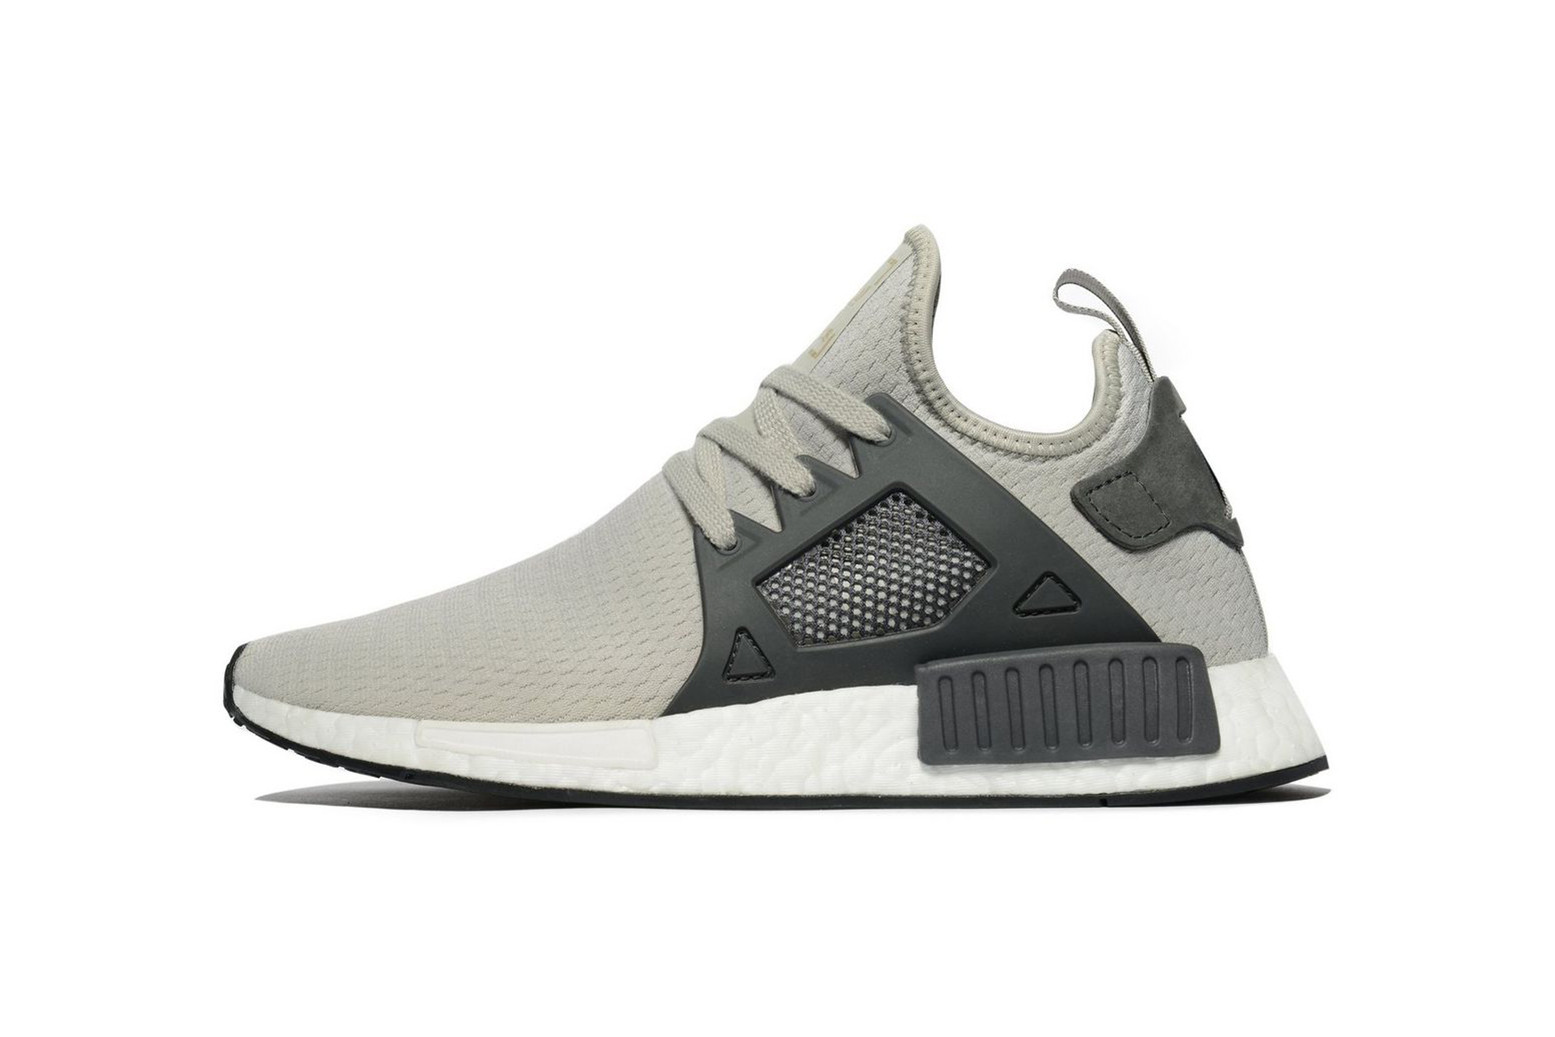 Exclusive NMD XR1s at JD Sports